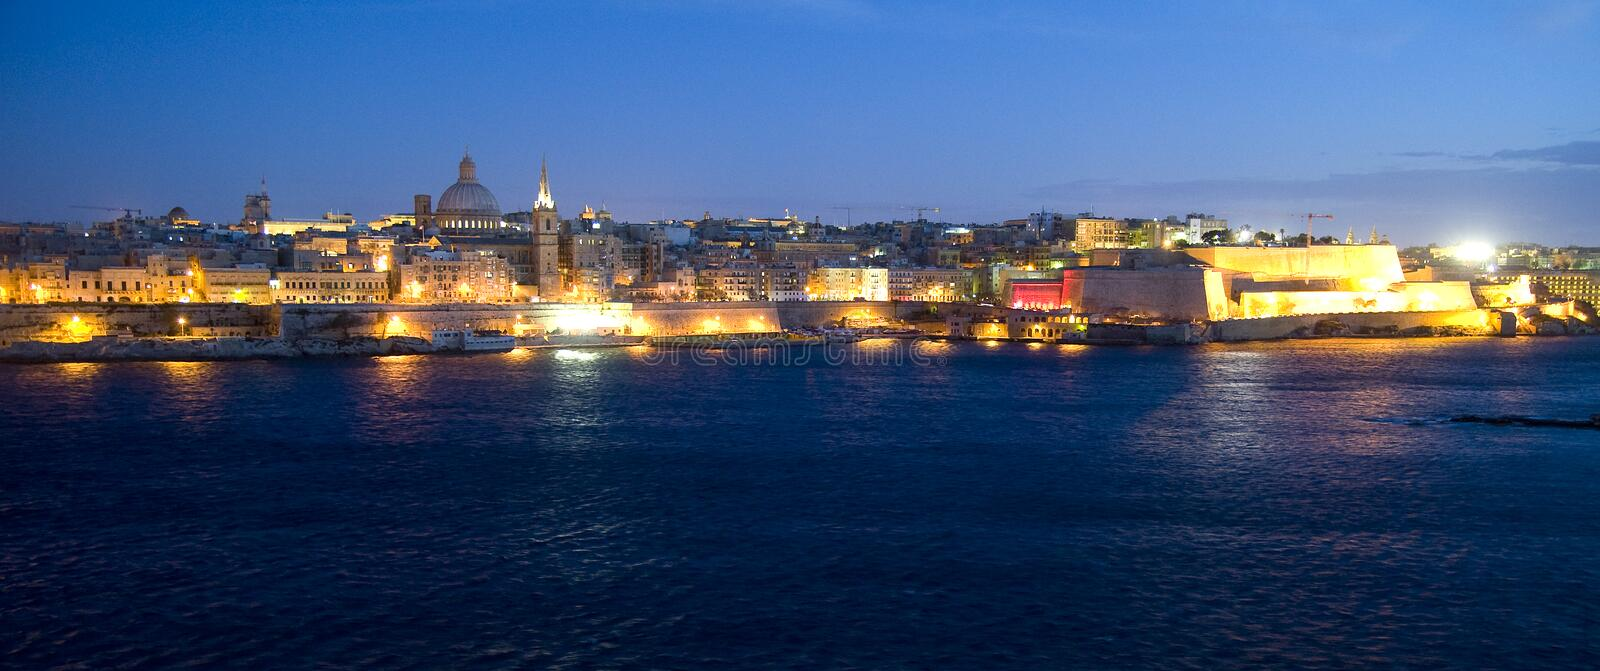 Valetta at night. Malta royalty free stock images